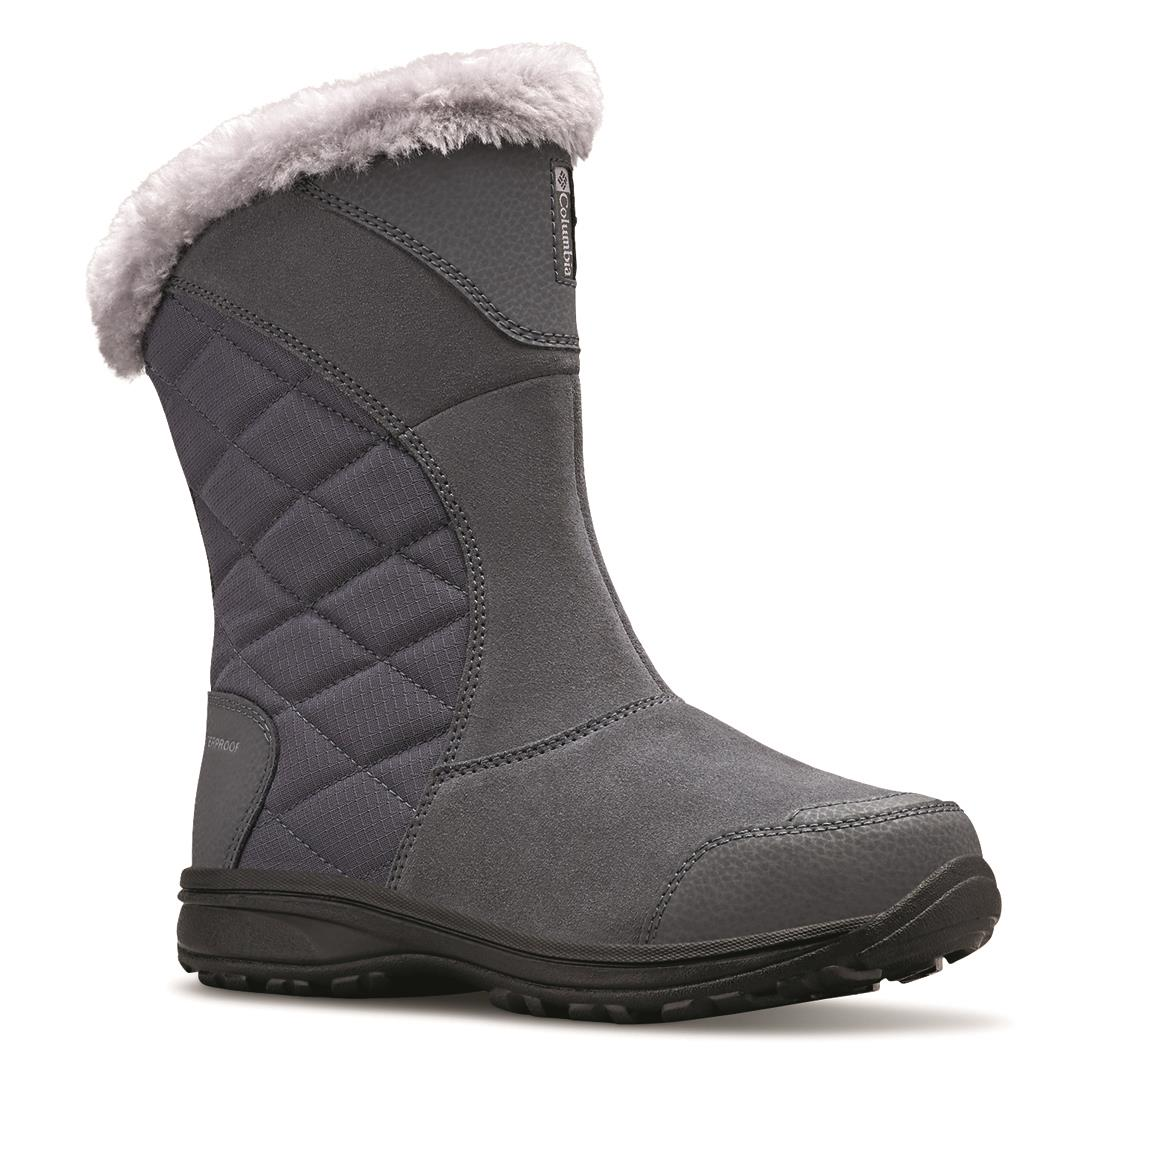 Columbia Women's  Ice Maiden II Slip-On Waterproof Boots, Graphite